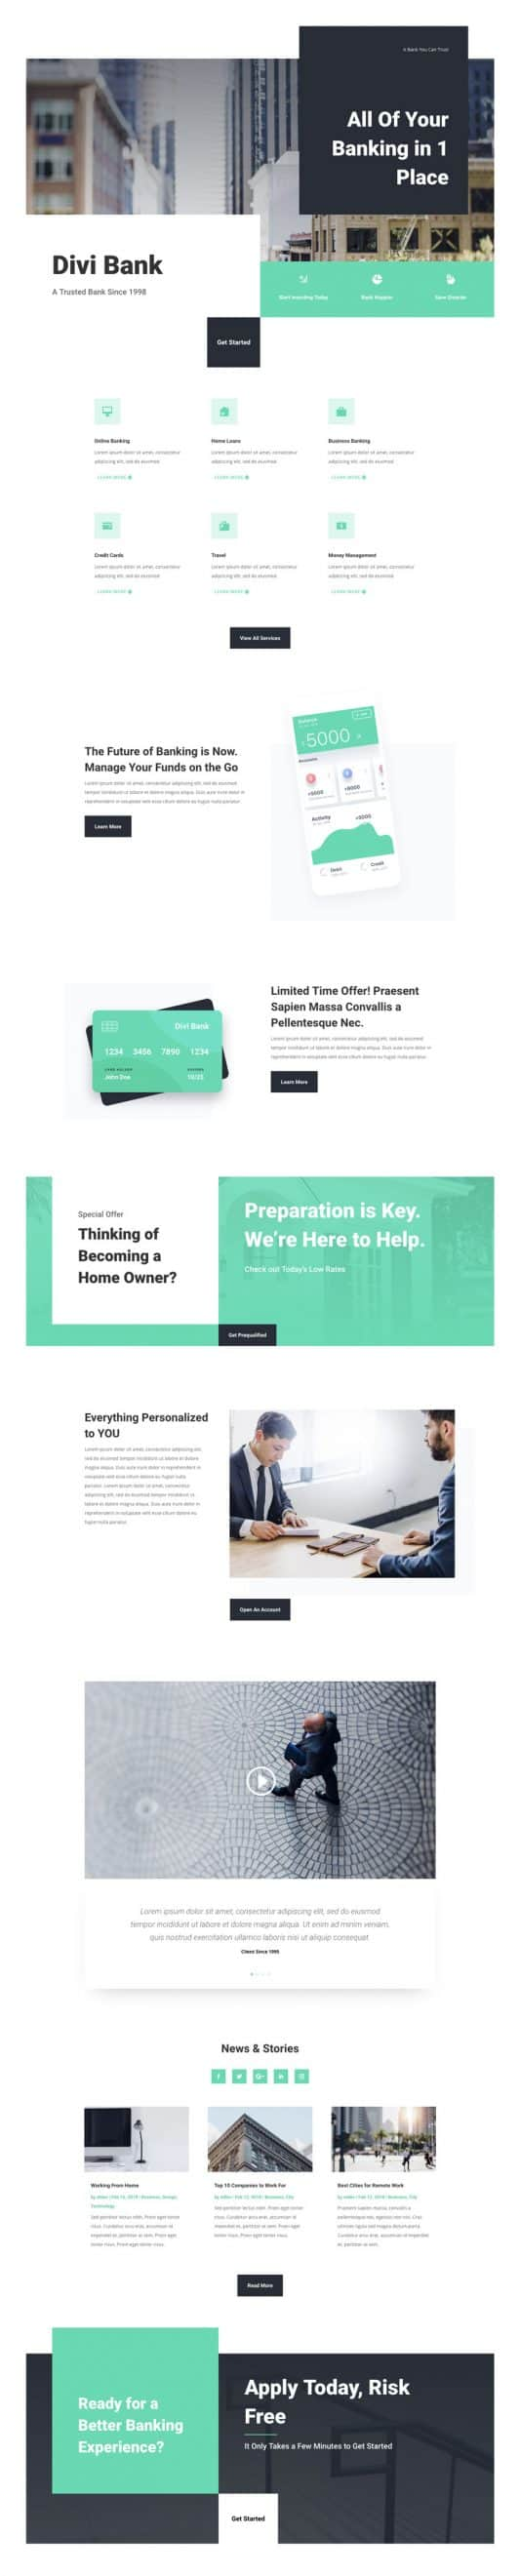 Bank Landing Page Style 1